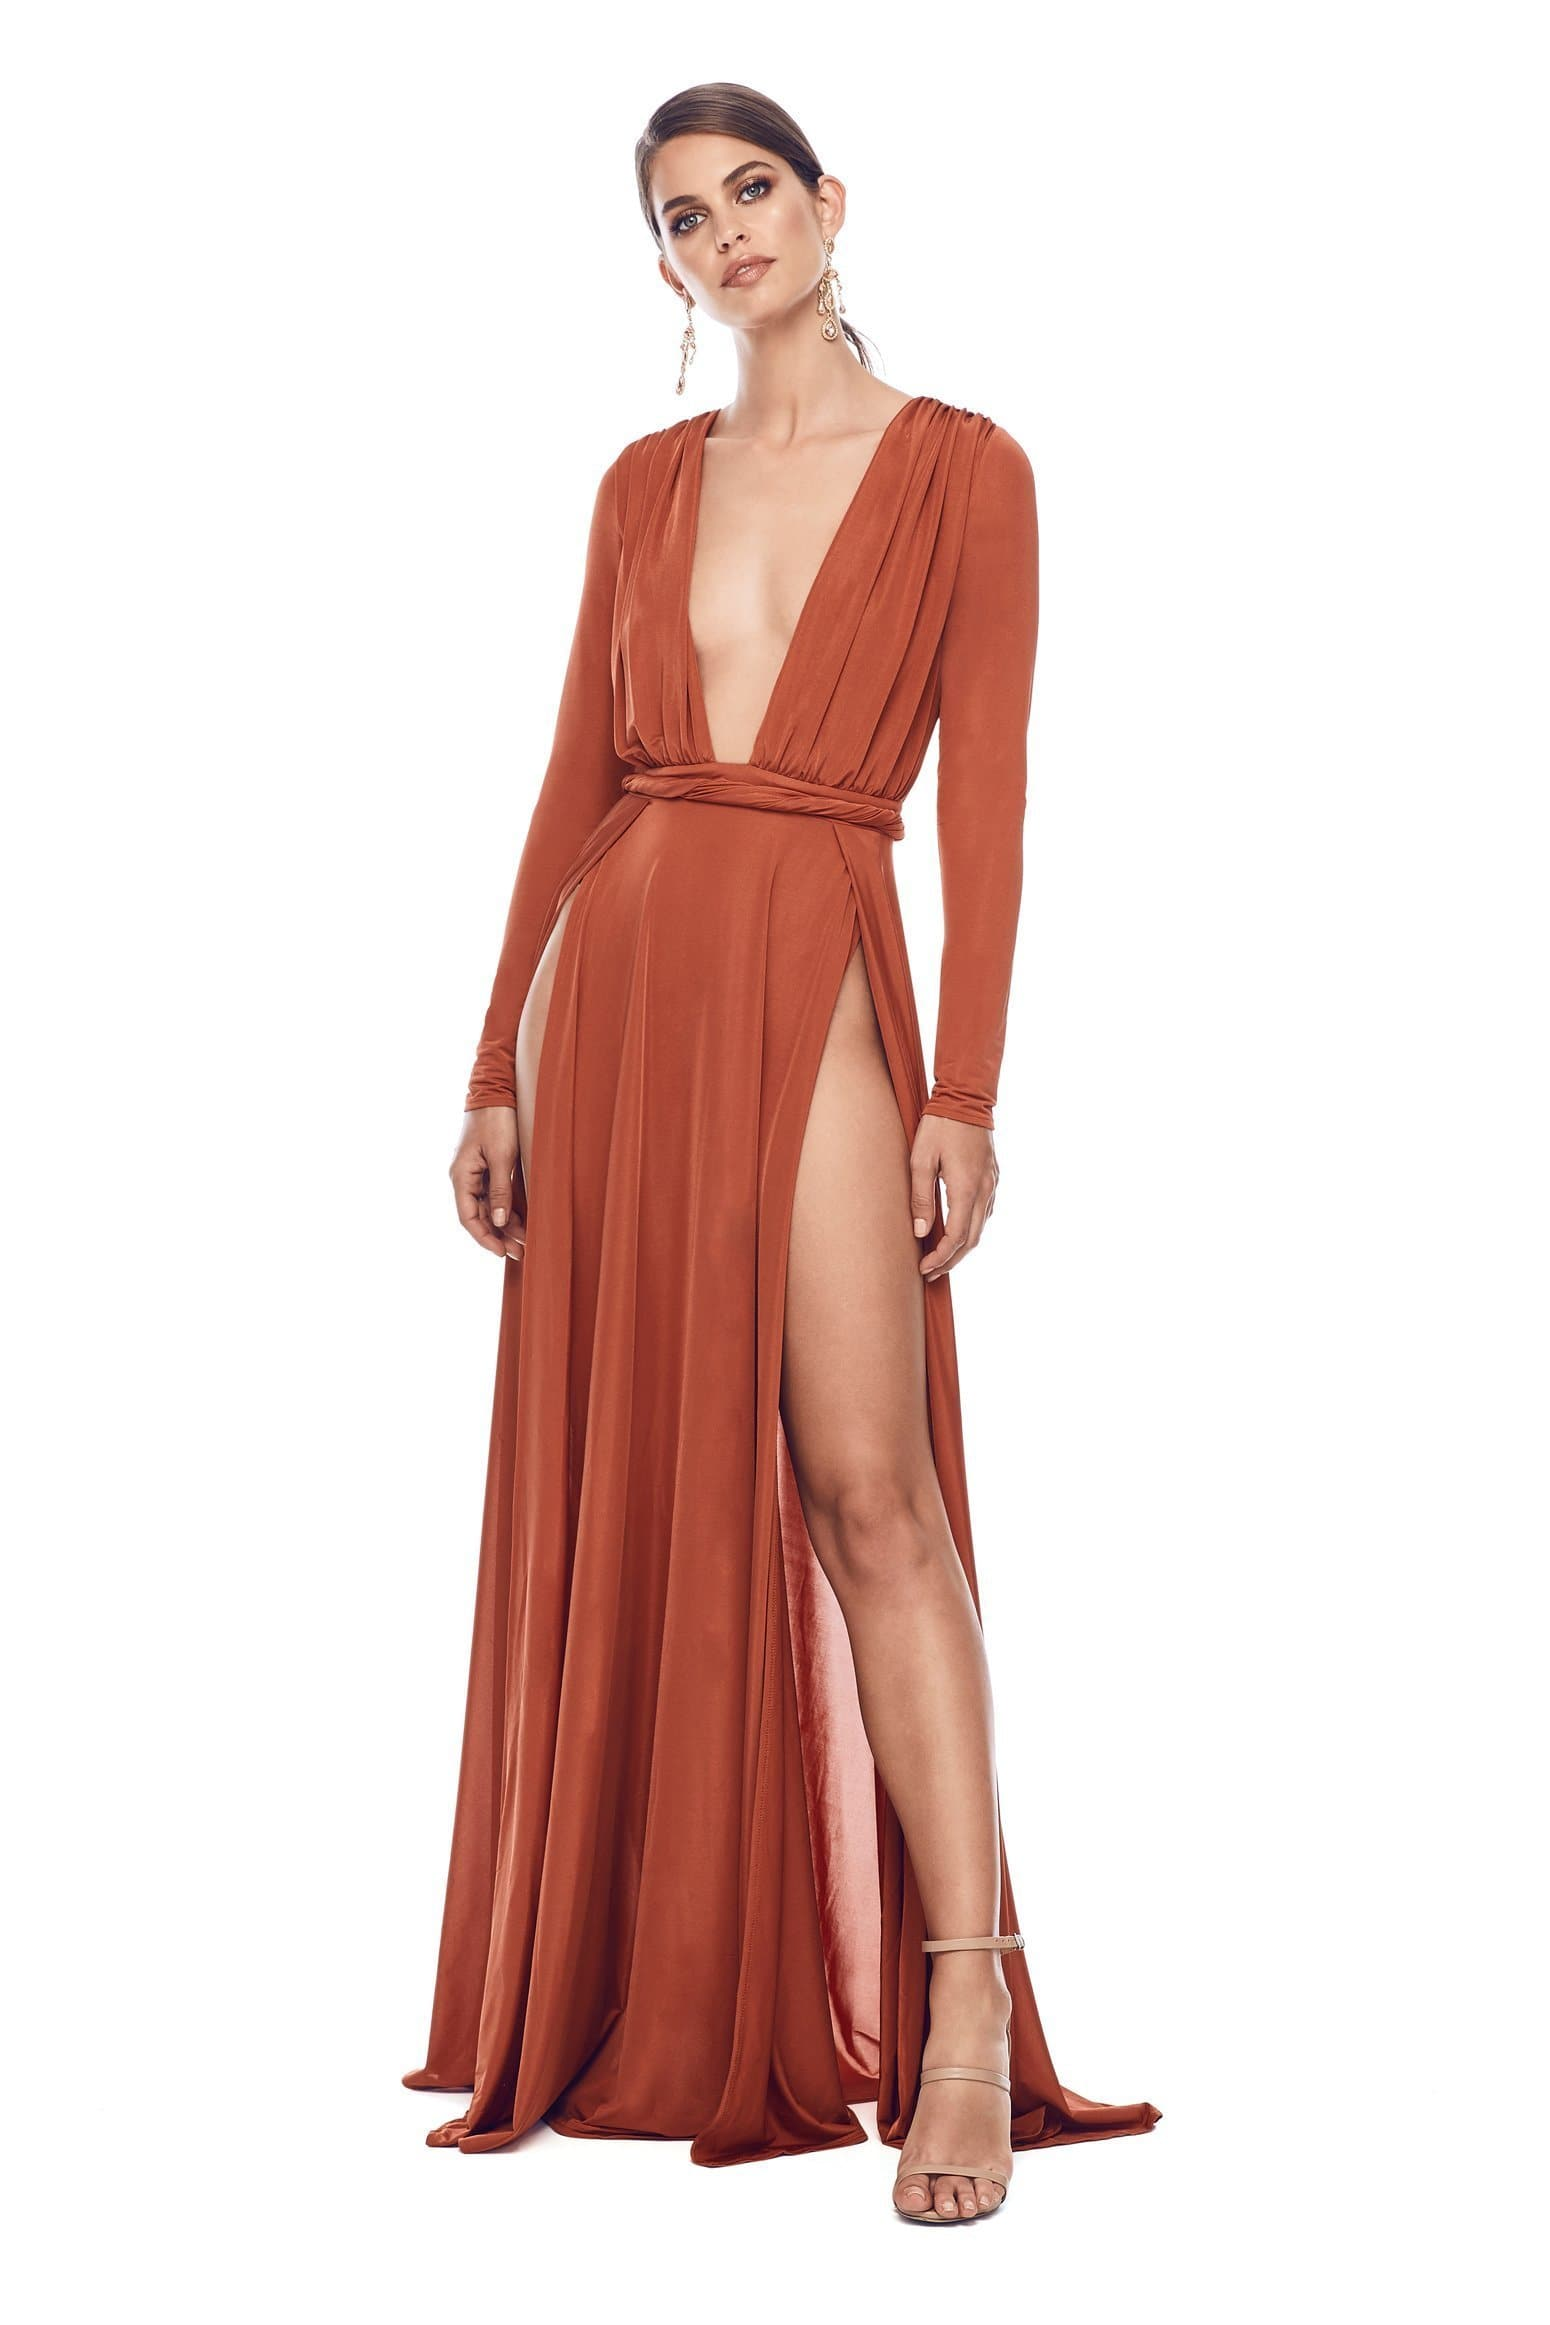 Sahara - Golden Rust Jersey Gown with Long Sleeves & Deep Plunge